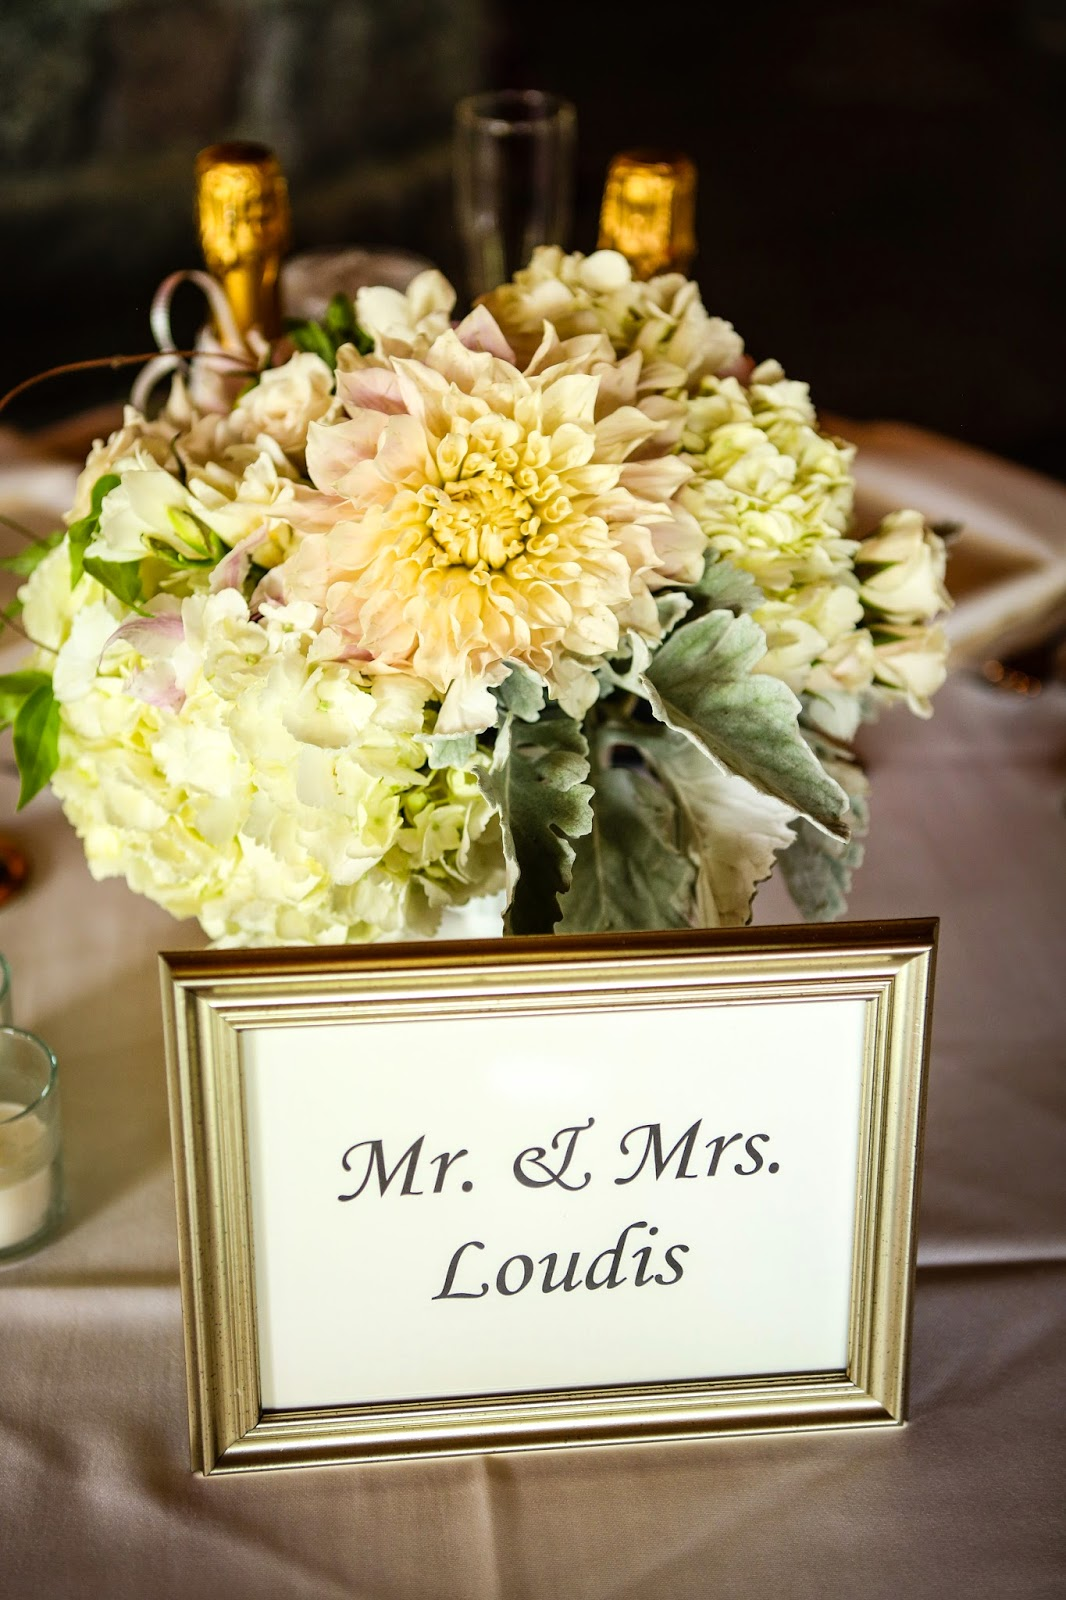 Lake Placid Wedding - The Whiteface Lodge Wedding - Reception Centerpiece - Upstate NY Wedding - Splendid Stems Floral Designs